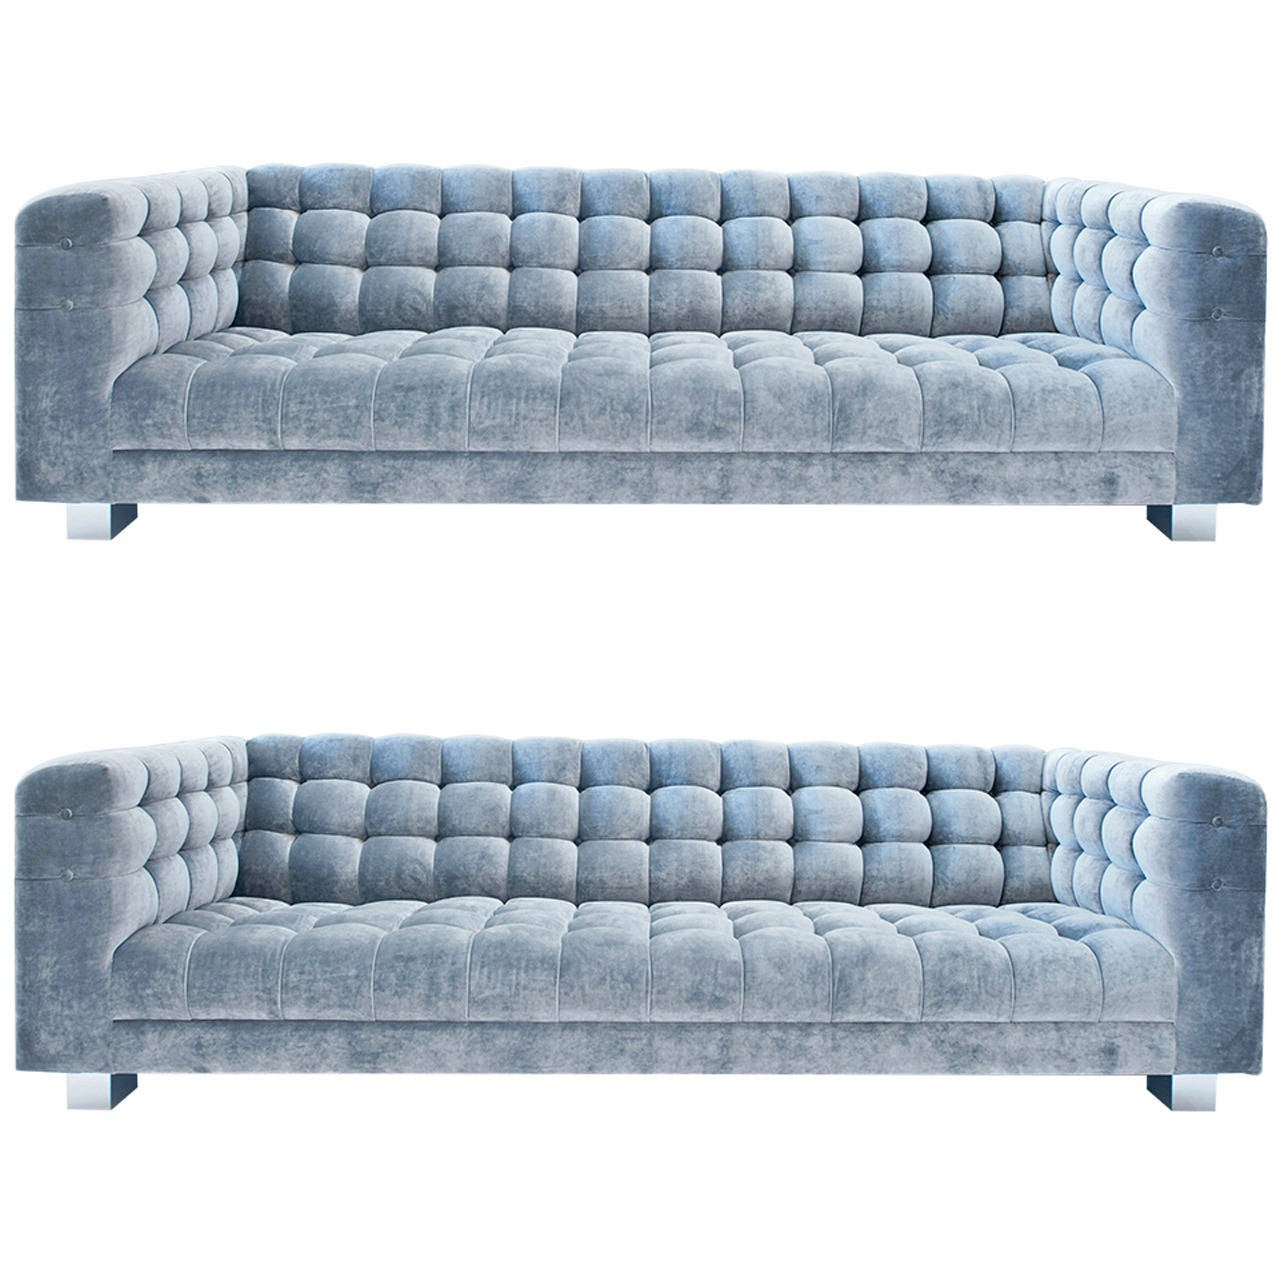 Sofa Dreams France Paul Evans Floating Sofa Usa Circa 1975 At 1stdibs